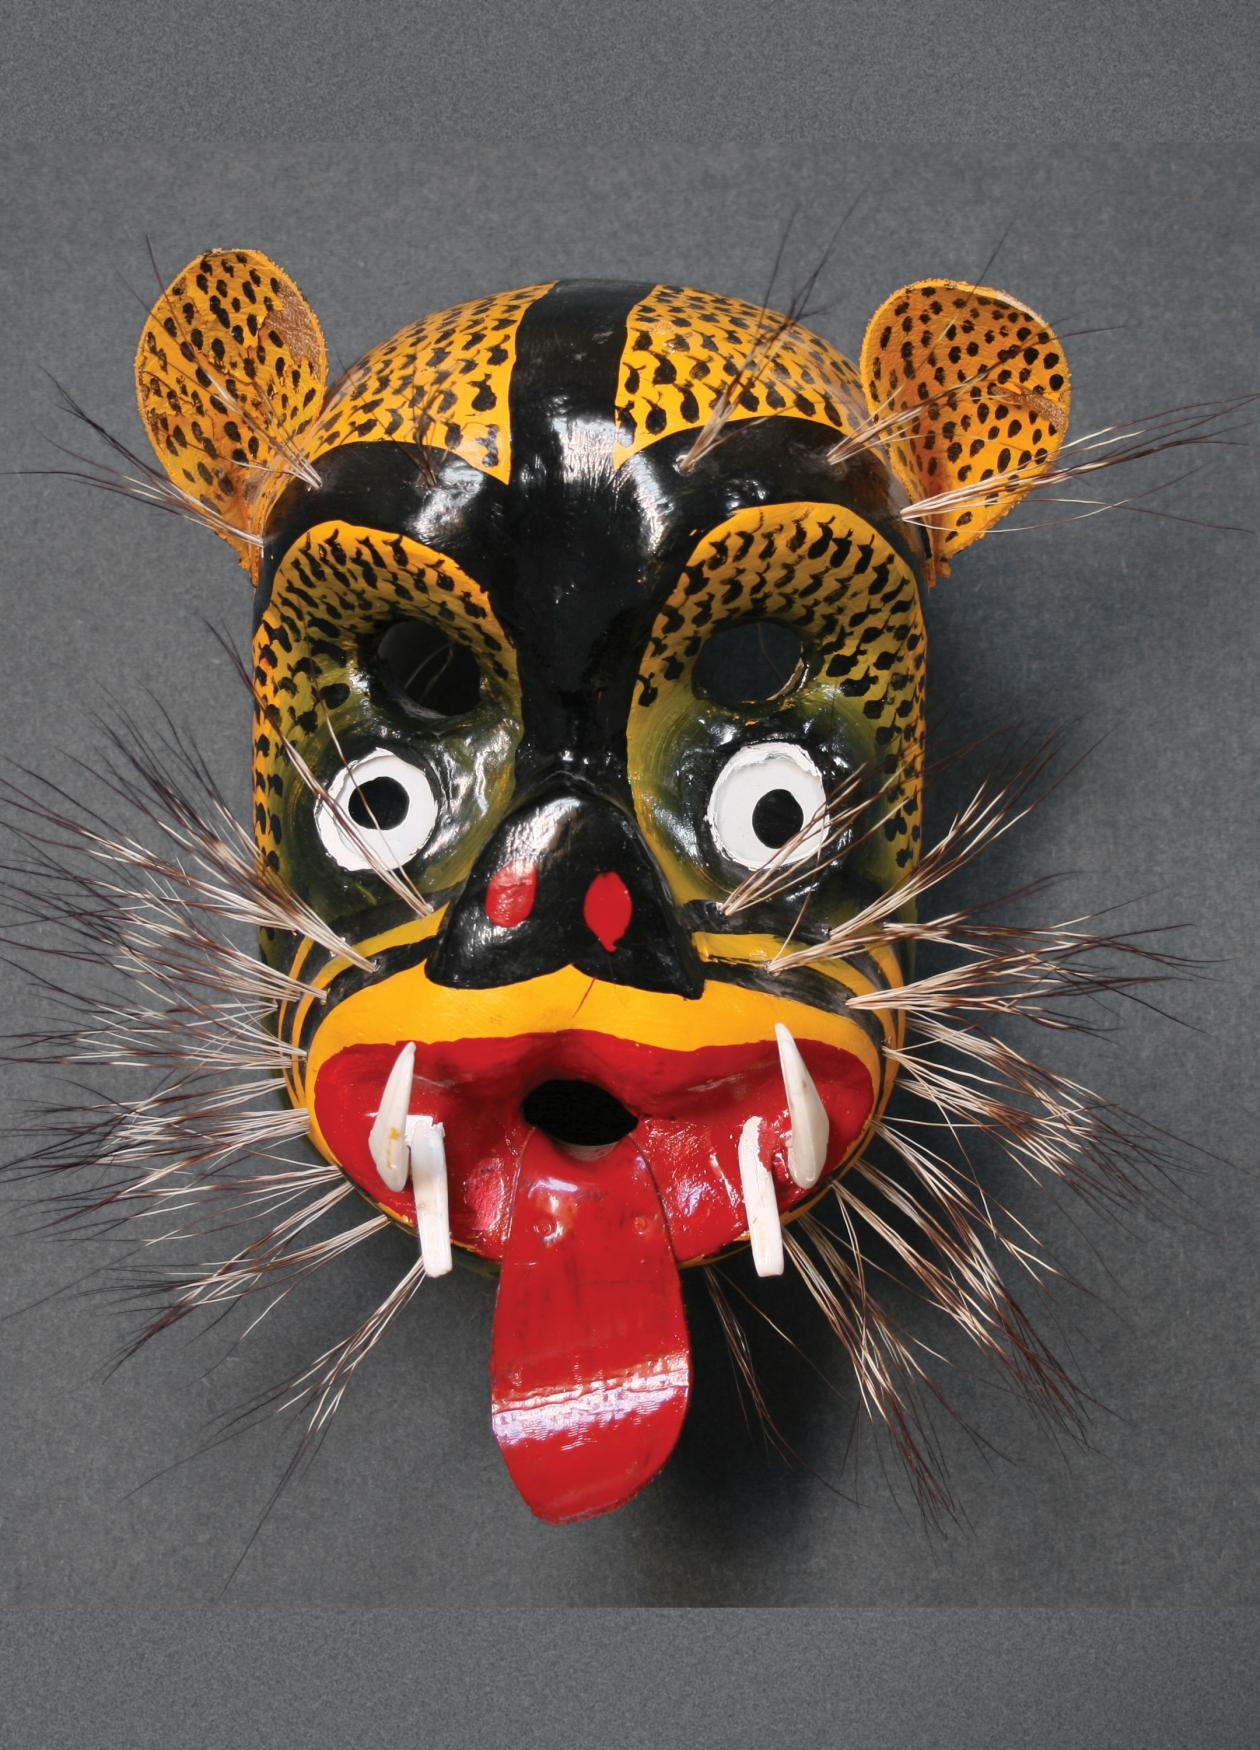 Photograph of a wooden mask, colorful